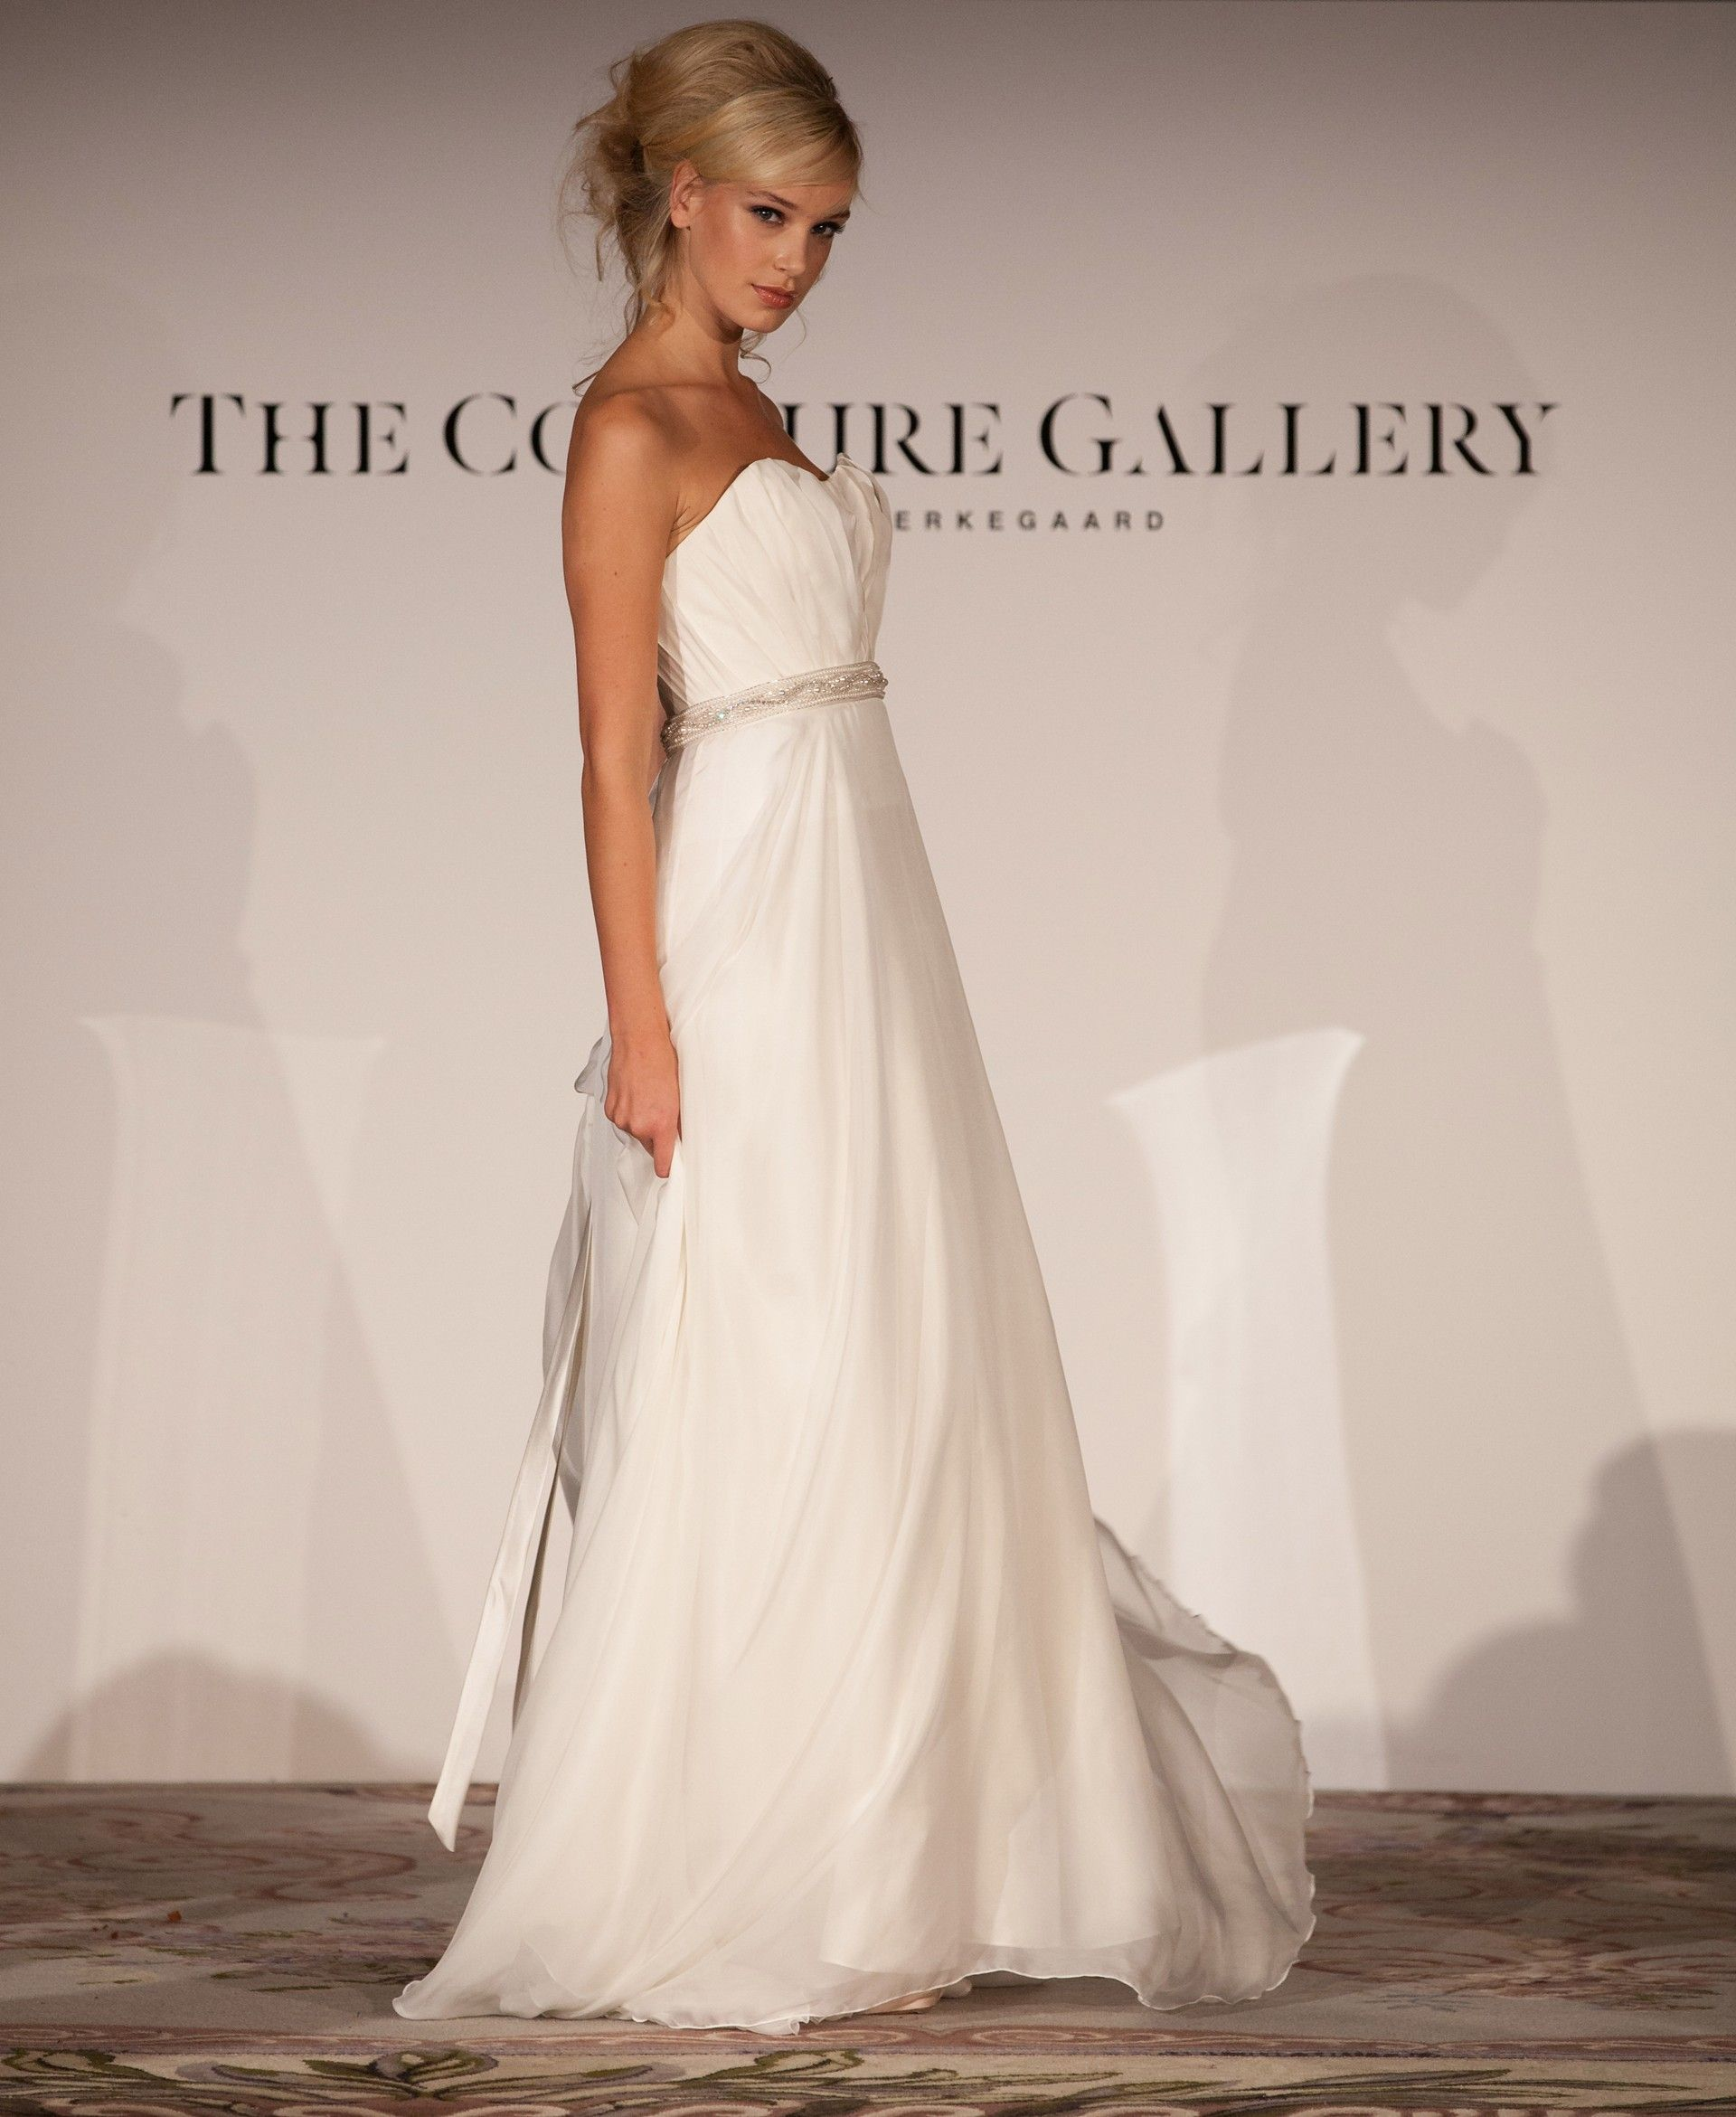 Couture wedding dresses london  The Anna May Gown  The Couture Gallery  Designer Wedding Dresses